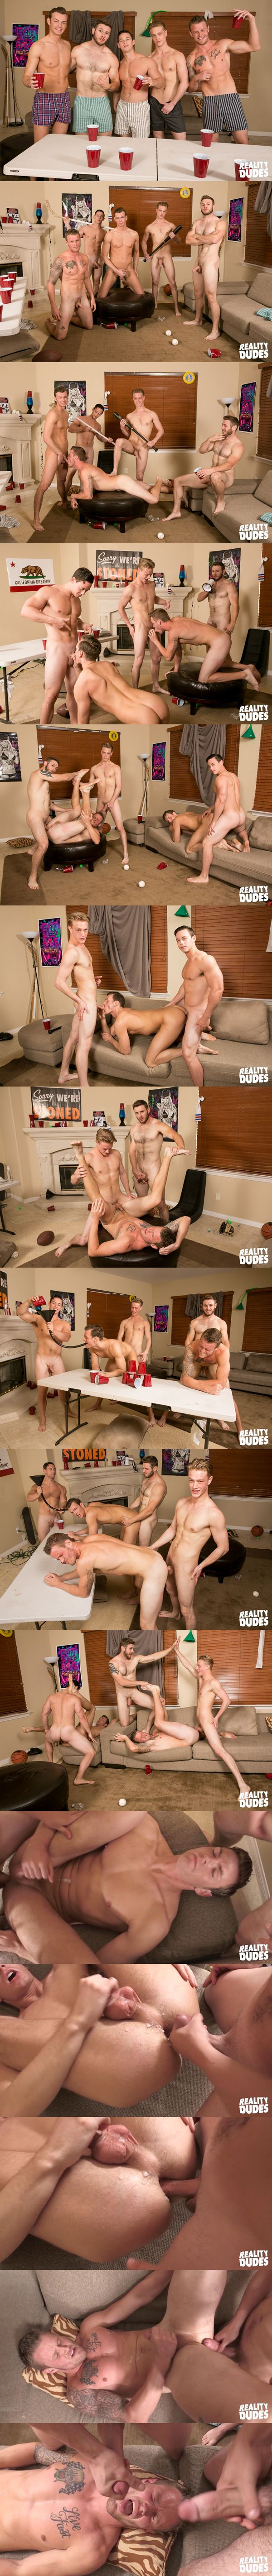 Cole, Ken and Tobias Bareback Chase and Sean in Flip Cup 2 Bareback Fuck at Realitydudes 02